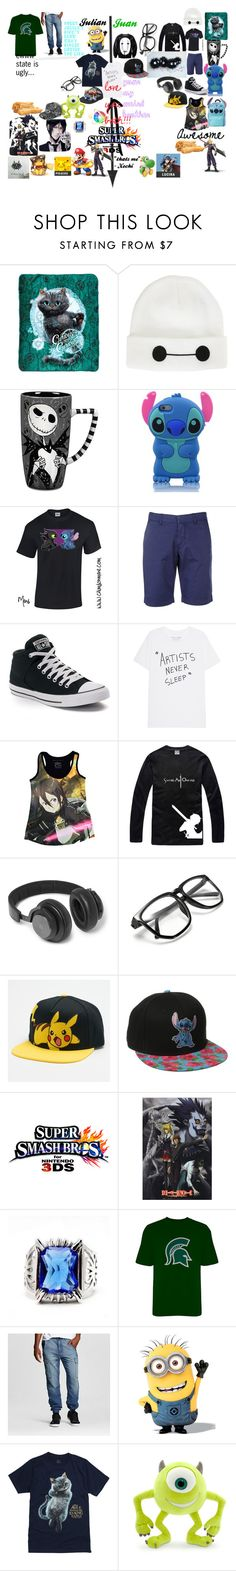 """my brothers Juan & Julian / The Twins"" by xochi-zavala on Polyvore featuring Disney, FAY, Converse, Kirito, B&O Play, Nintendo, Standard & Grind, men's fashion and menswear"